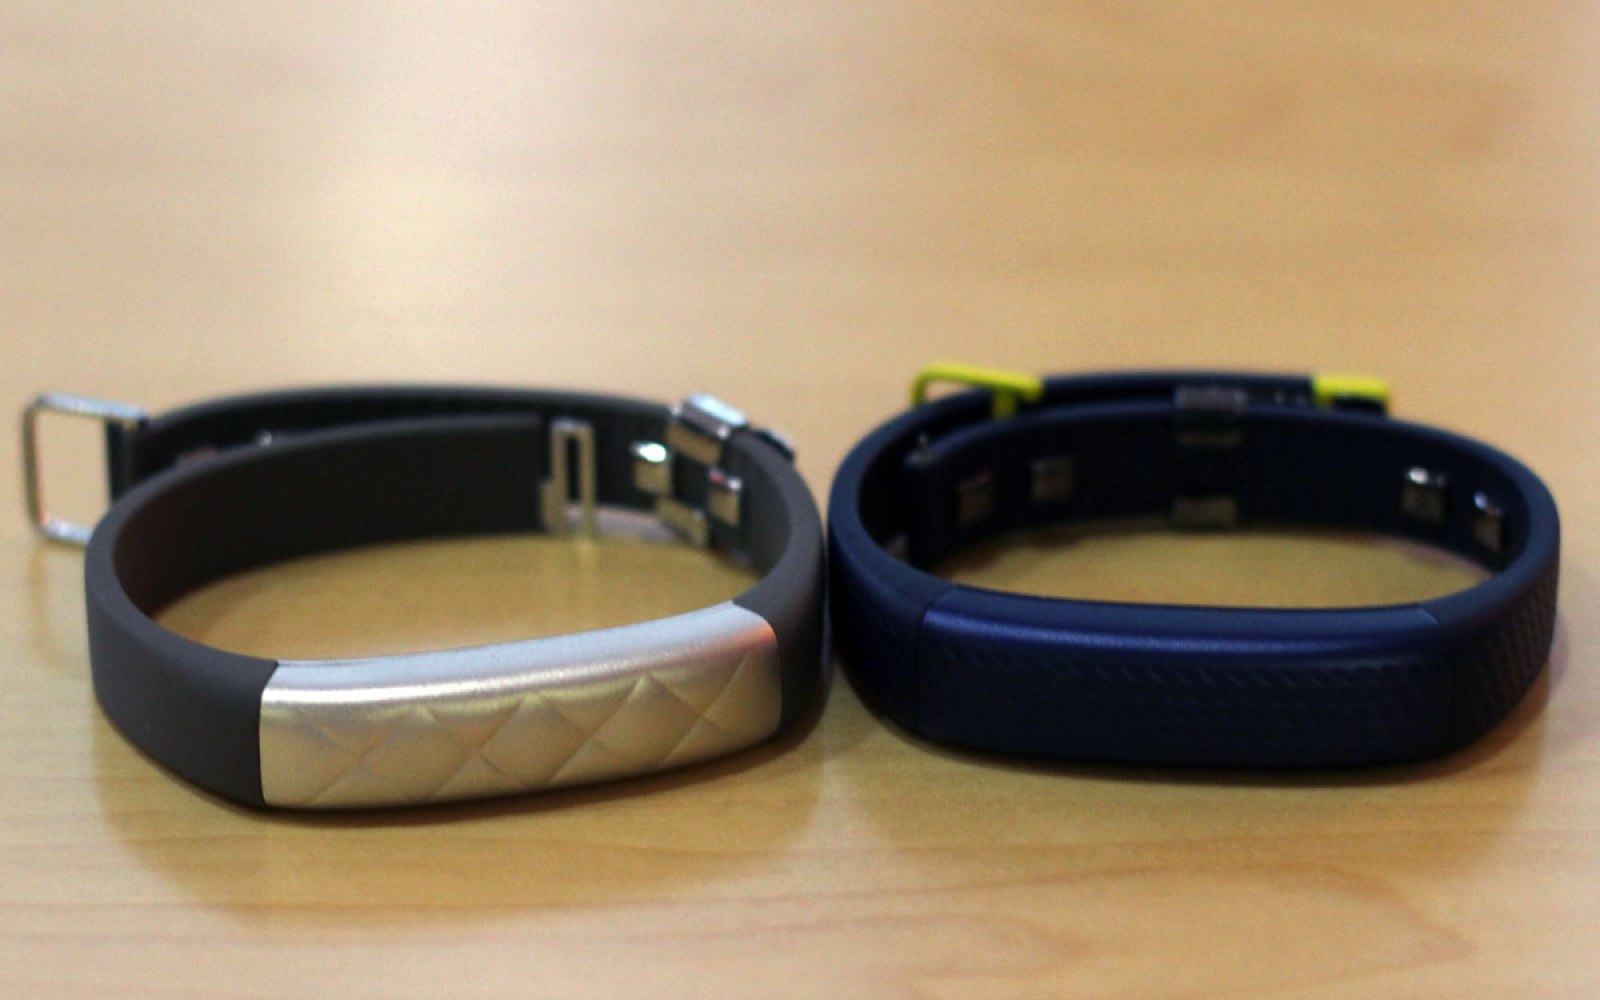 Jawbone announces updated Up3 wristband, new Up Move clip-on movement tracker